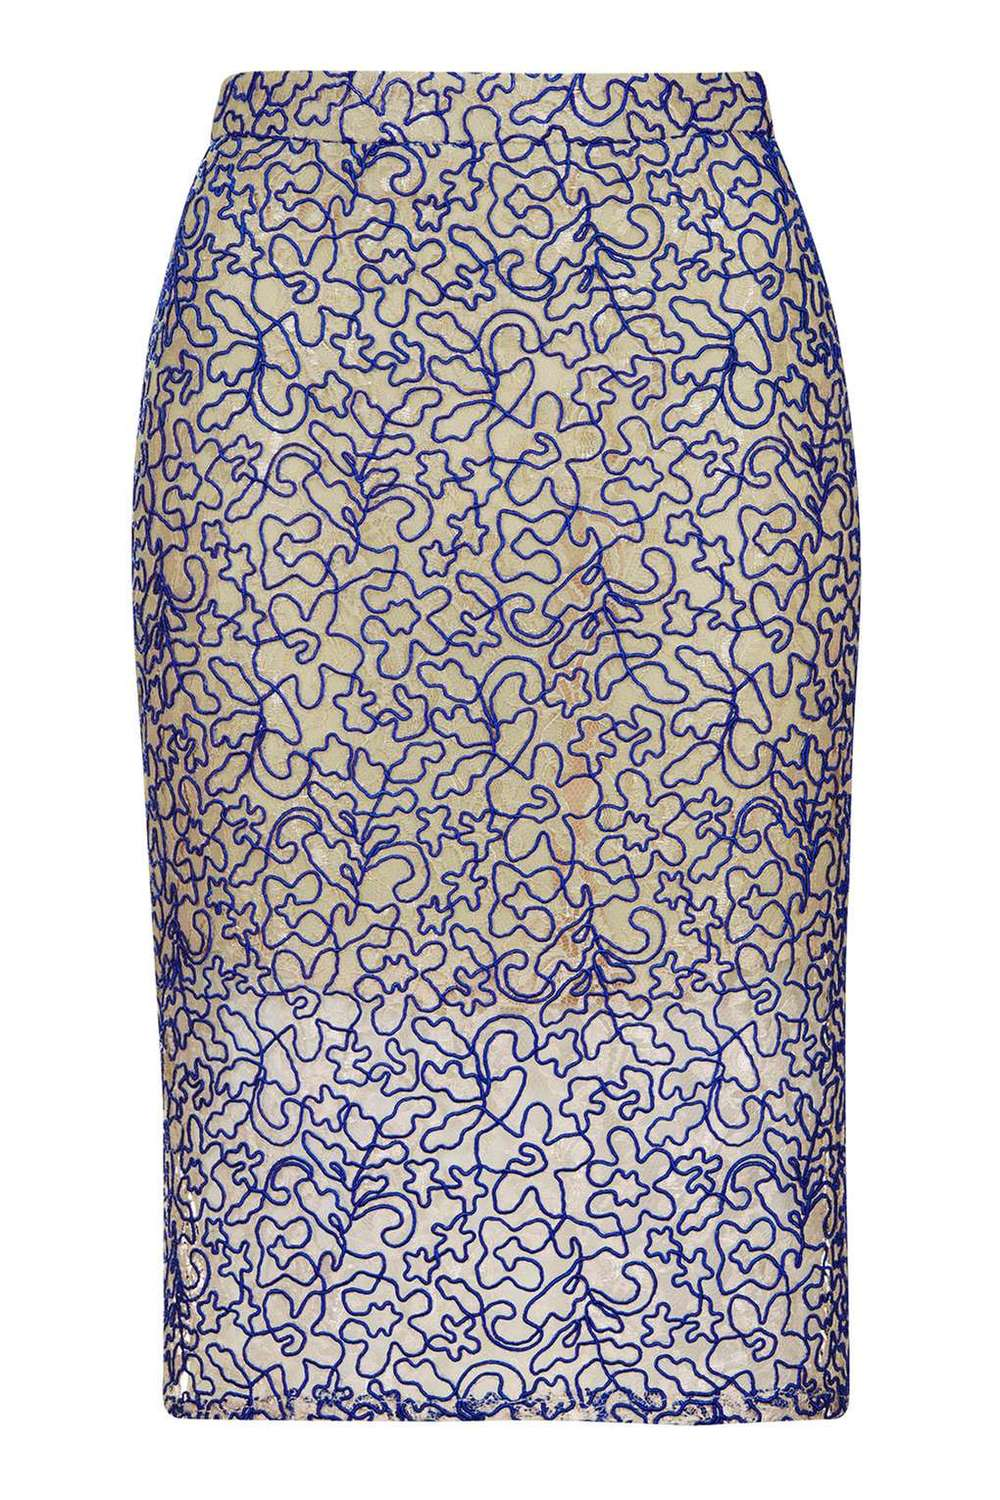 Petite Cord Lace Pencil Skirt. Topshop. $100